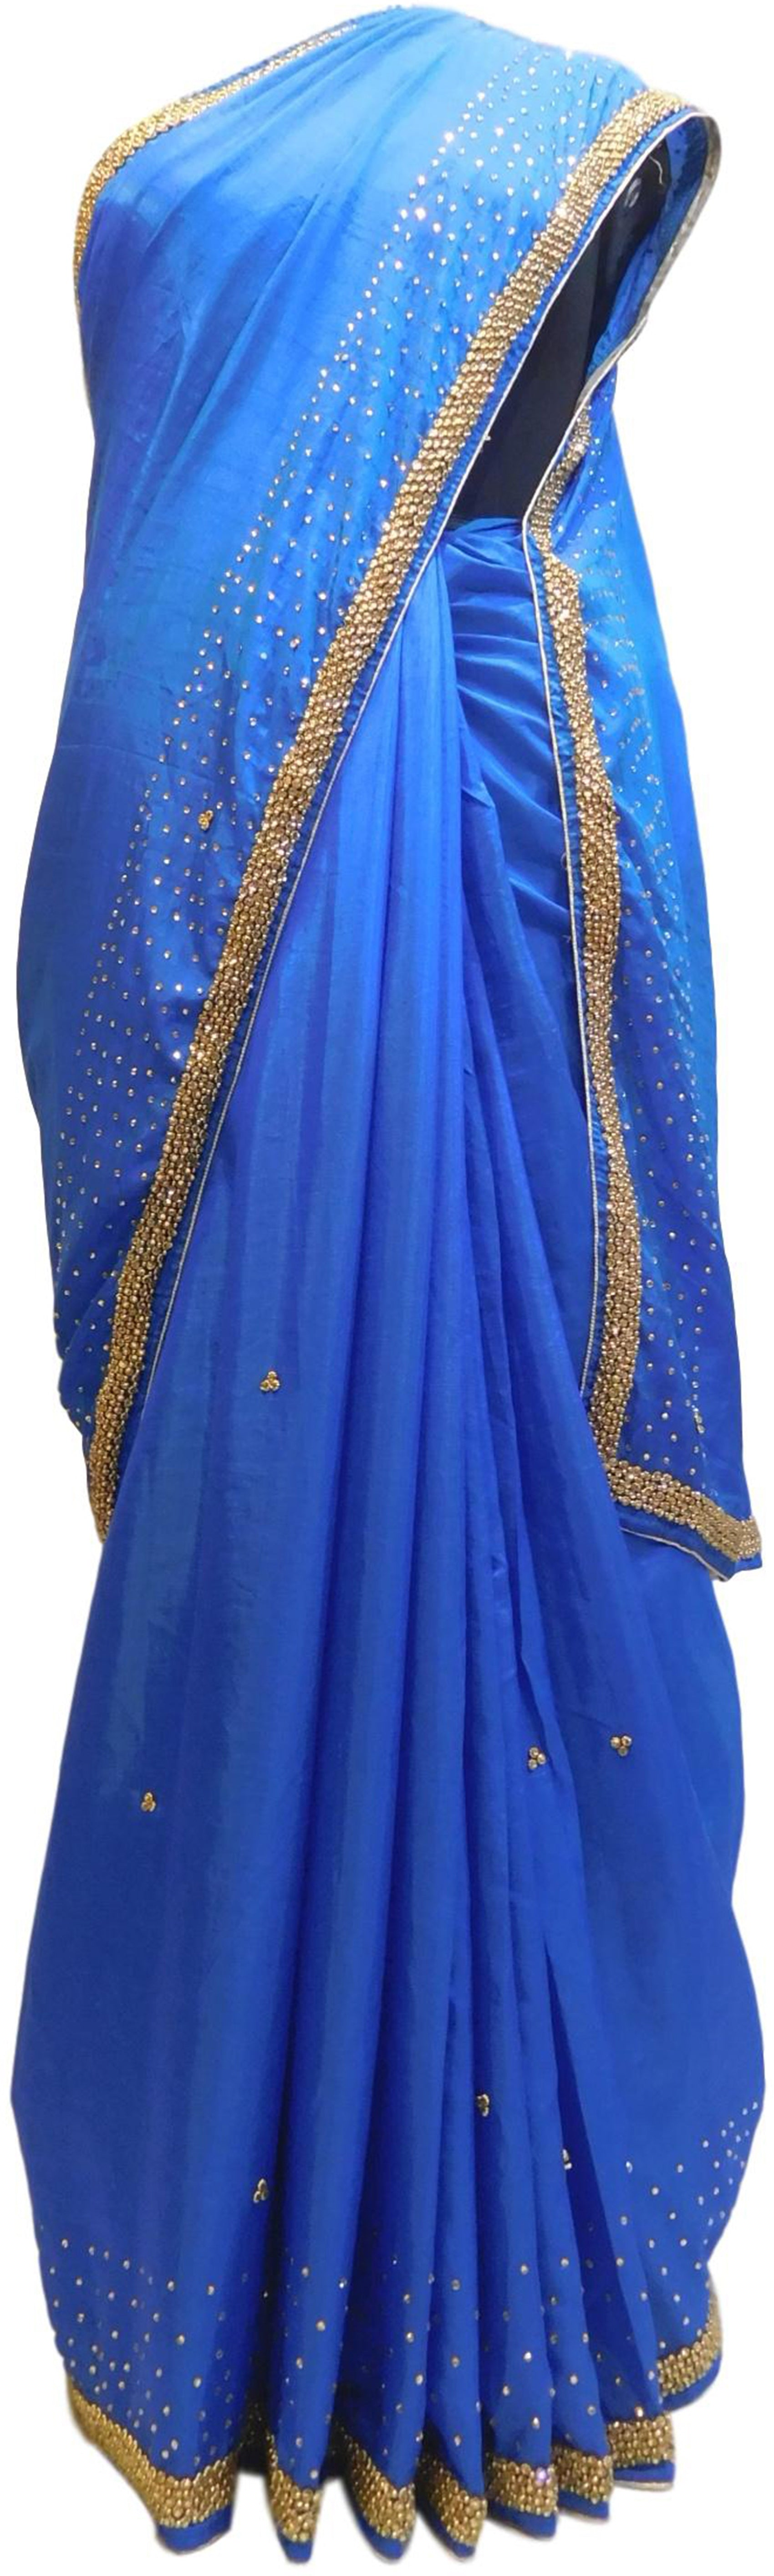 Blue Designer Silk Hand Embroidery Beads Stone Work Saree Sari